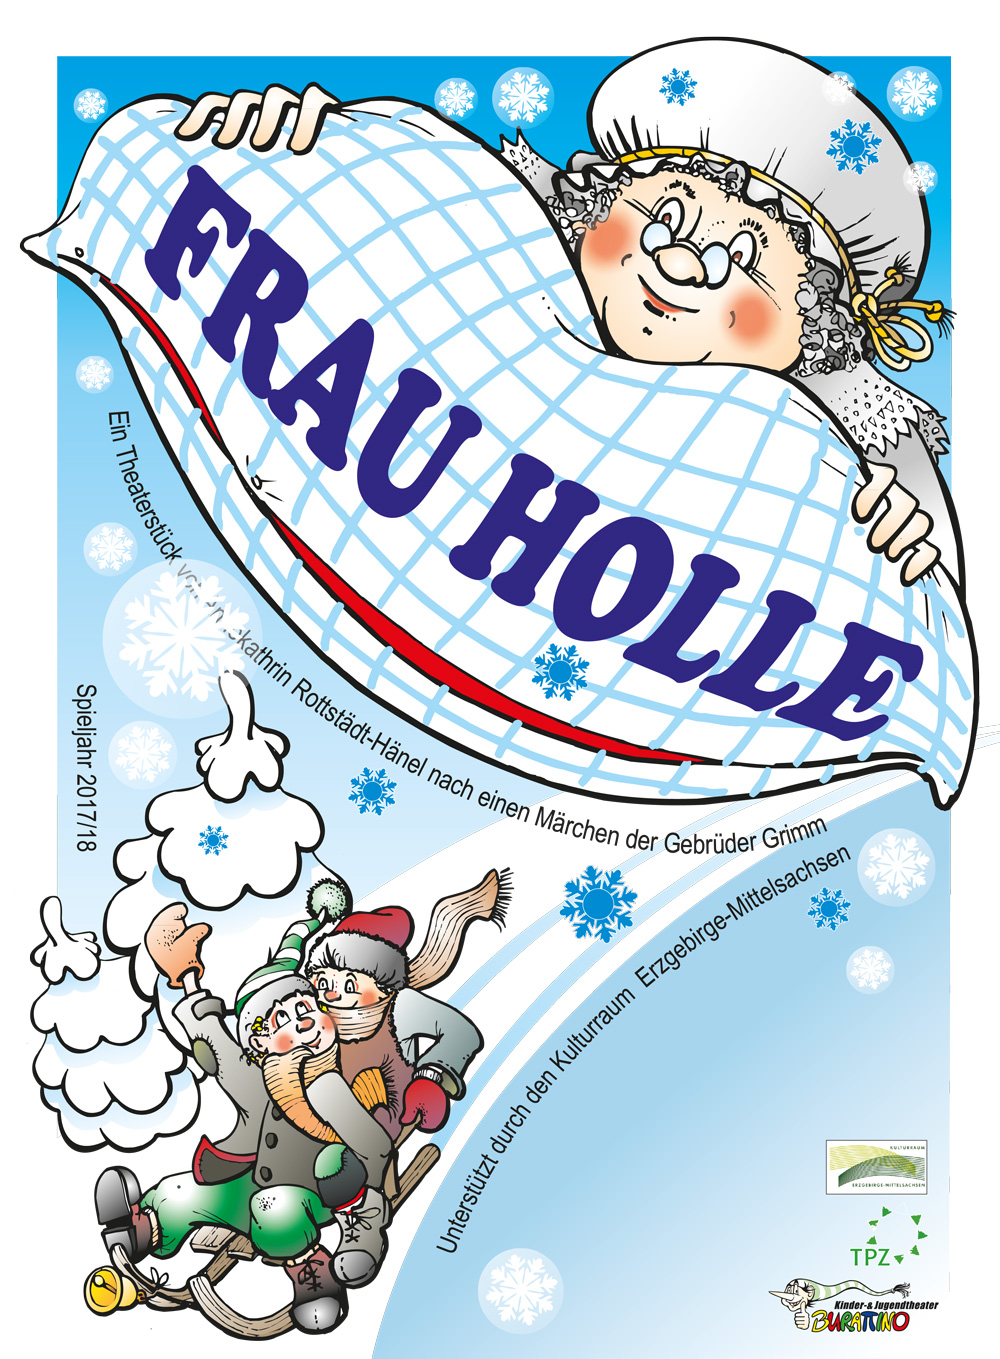 Stadthalle Limbach Oberfrohna Frau Holle Kindertheater